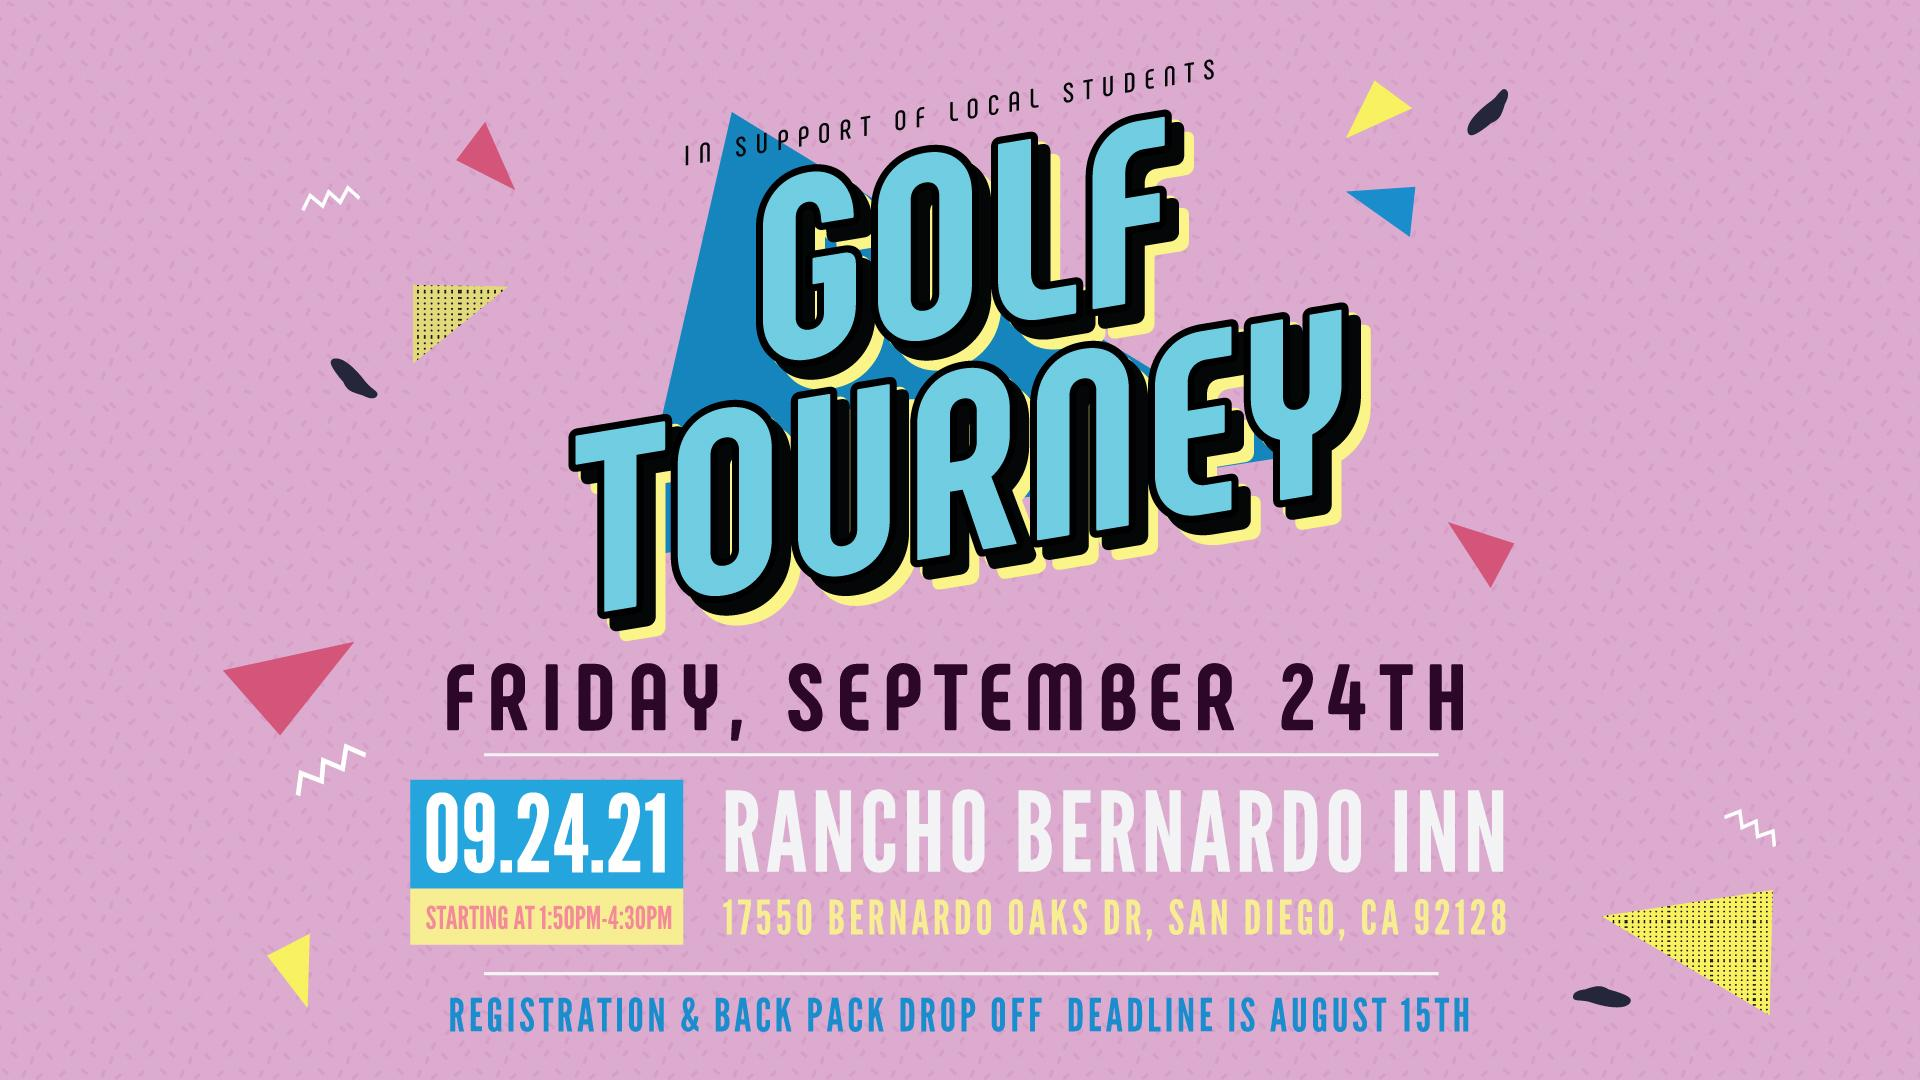 Ultimate TV Couples Golf Tournament for Kids in Need